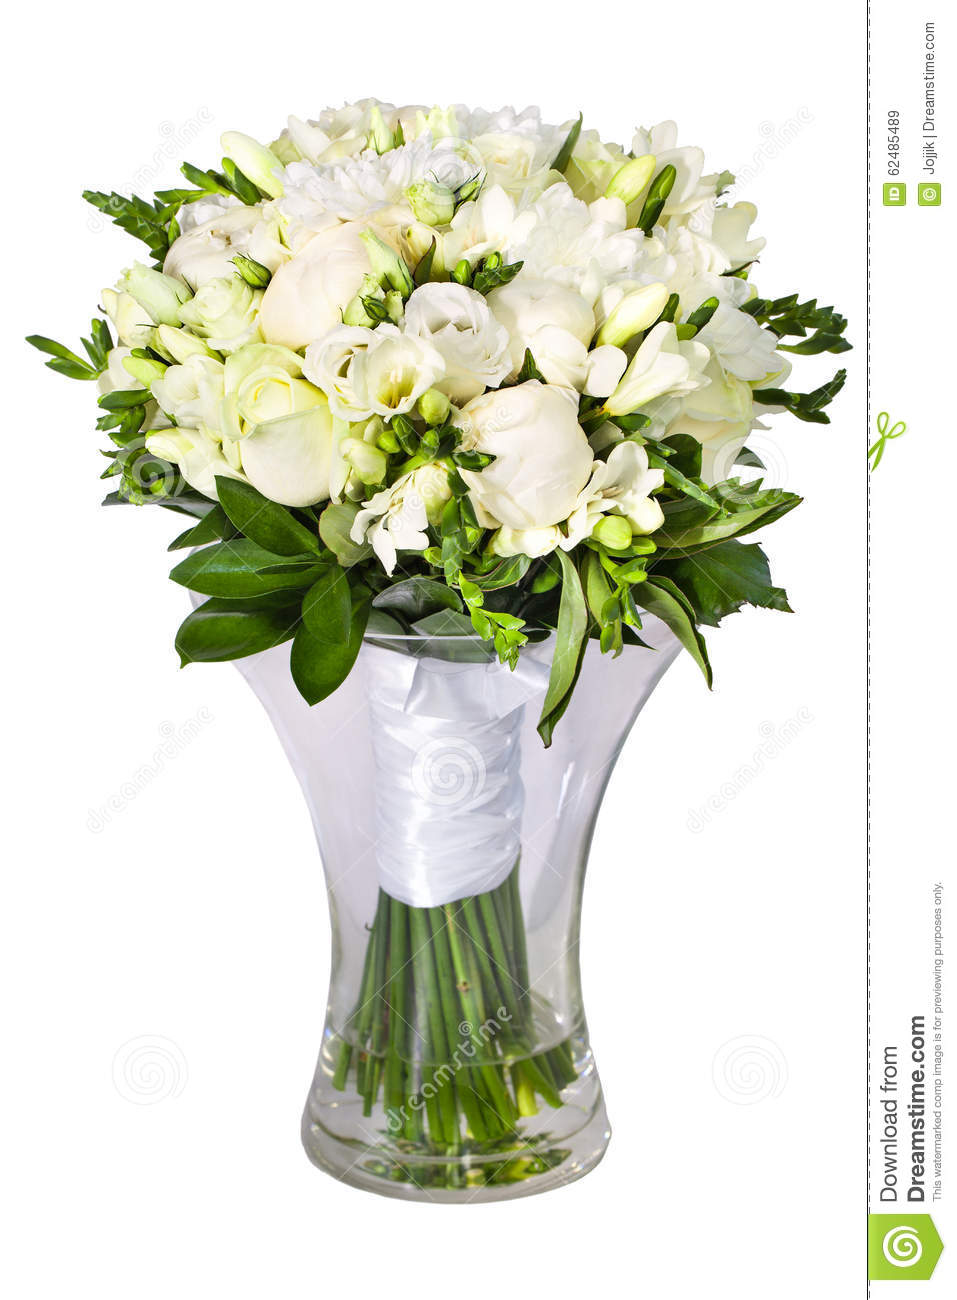 bouquet lumineux de mariage de fleur dans le vase en verre image stock image du c l bration. Black Bedroom Furniture Sets. Home Design Ideas